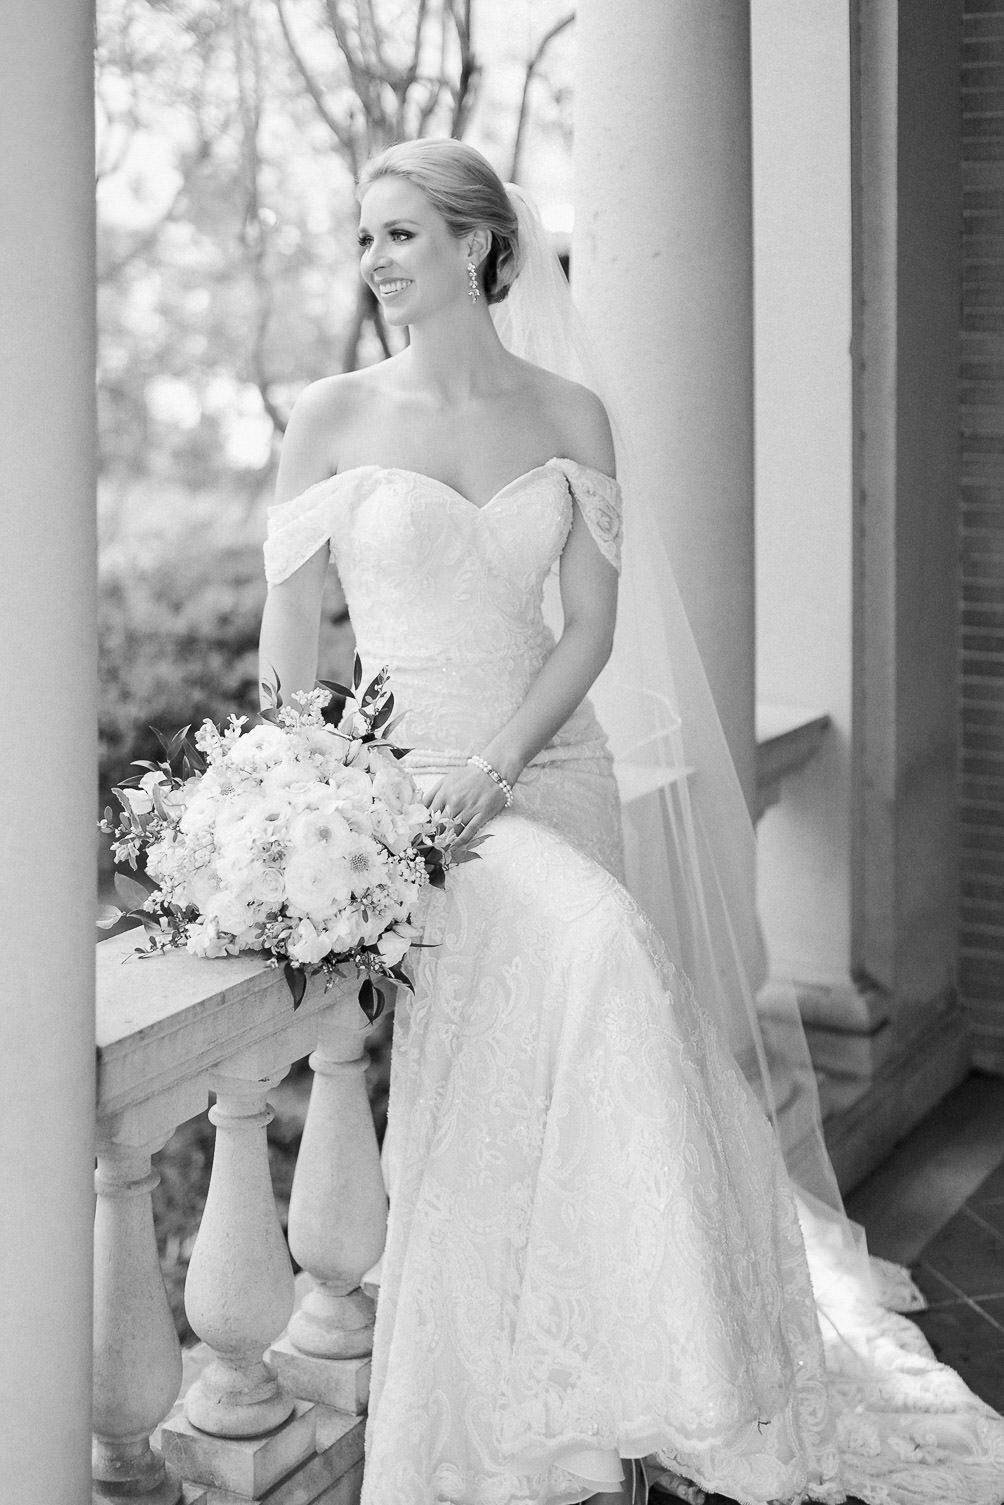 Bride sitting with bouquet in concrete porch columns smiling black and white